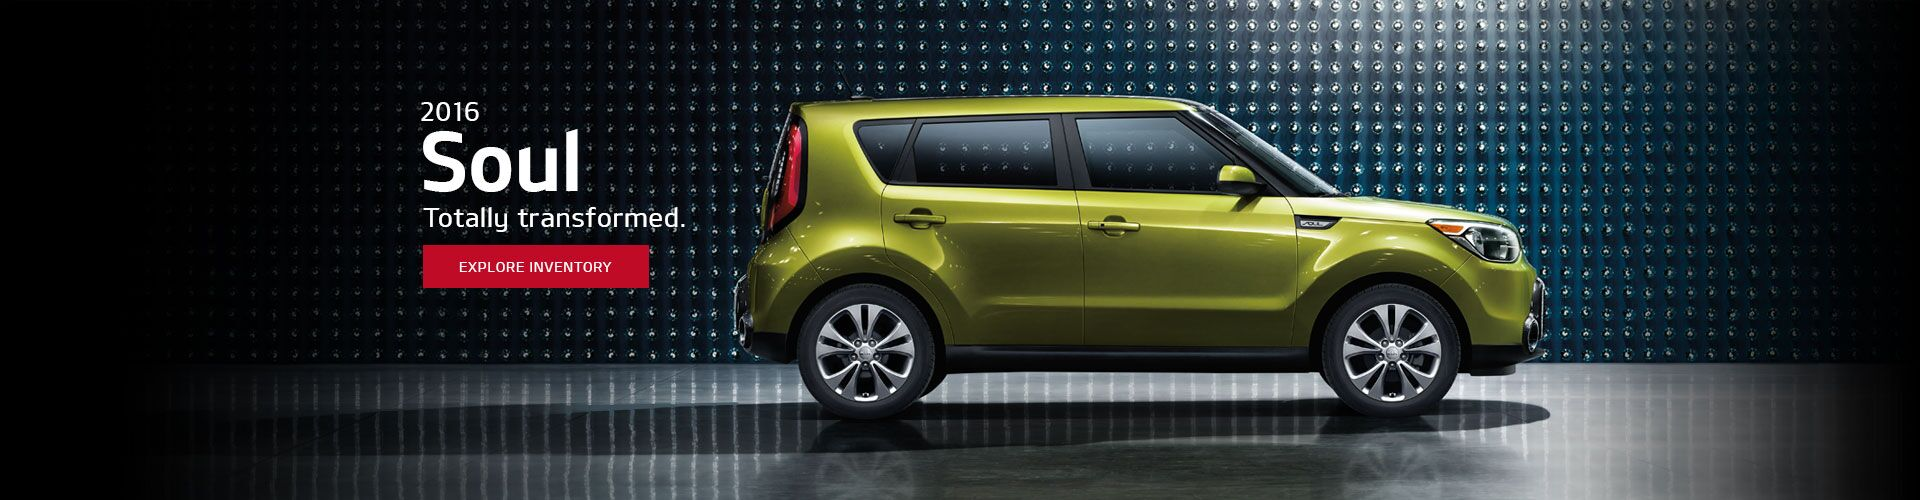 New Kia Soul at Spitzer Kia Cleveland